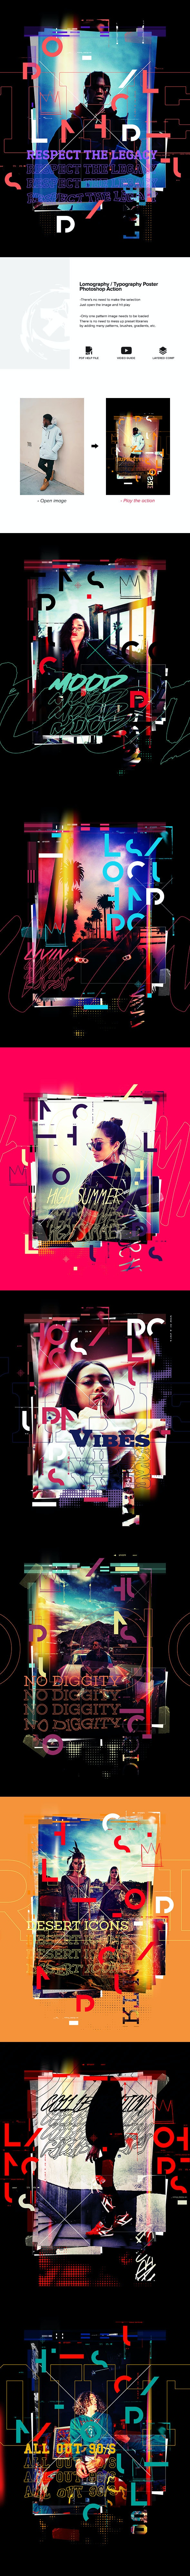 Lomography Typography Poster Photoshop Action - Photo Effects Actions